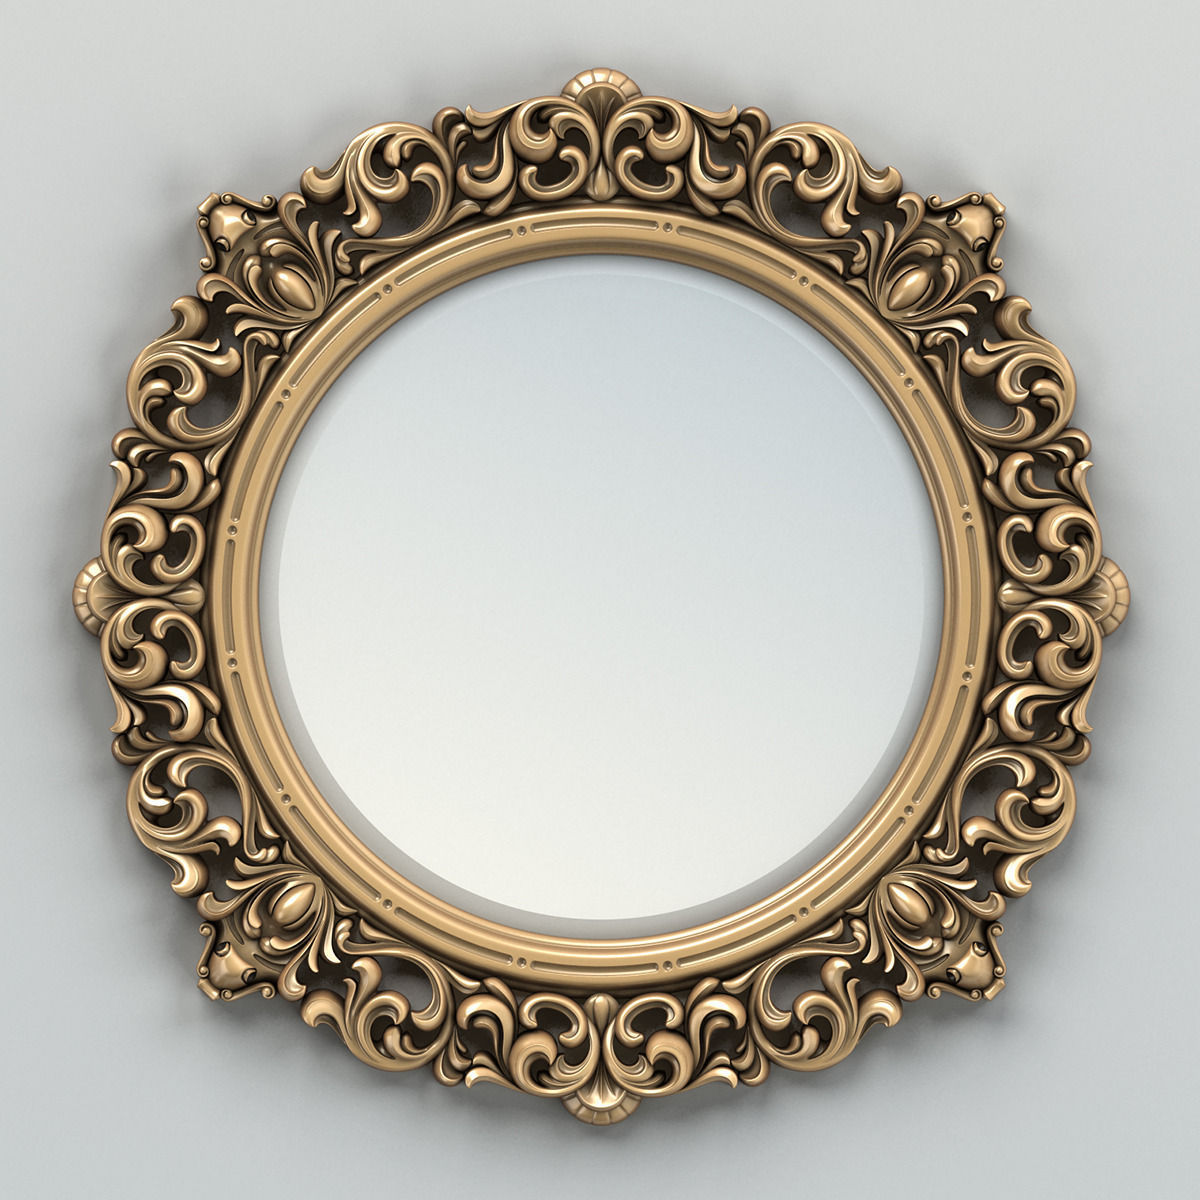 3D Round mirror frame 001 classic | CGTrader